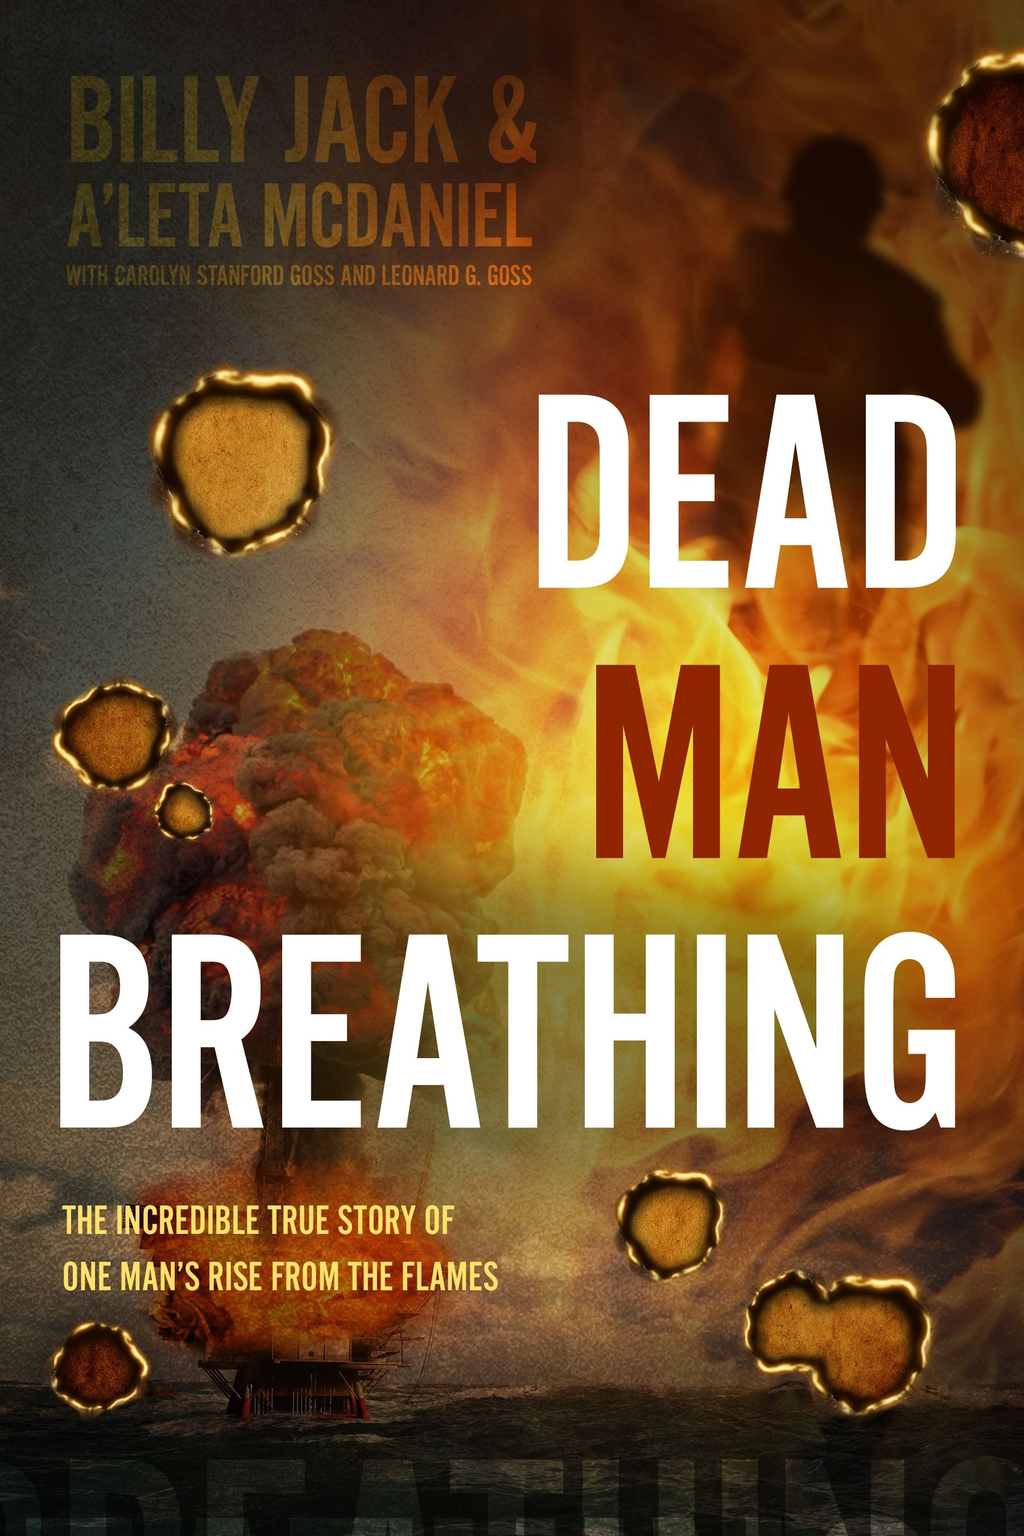 Dead Man Breathing: The incredible true story of one man's rise from the flames.